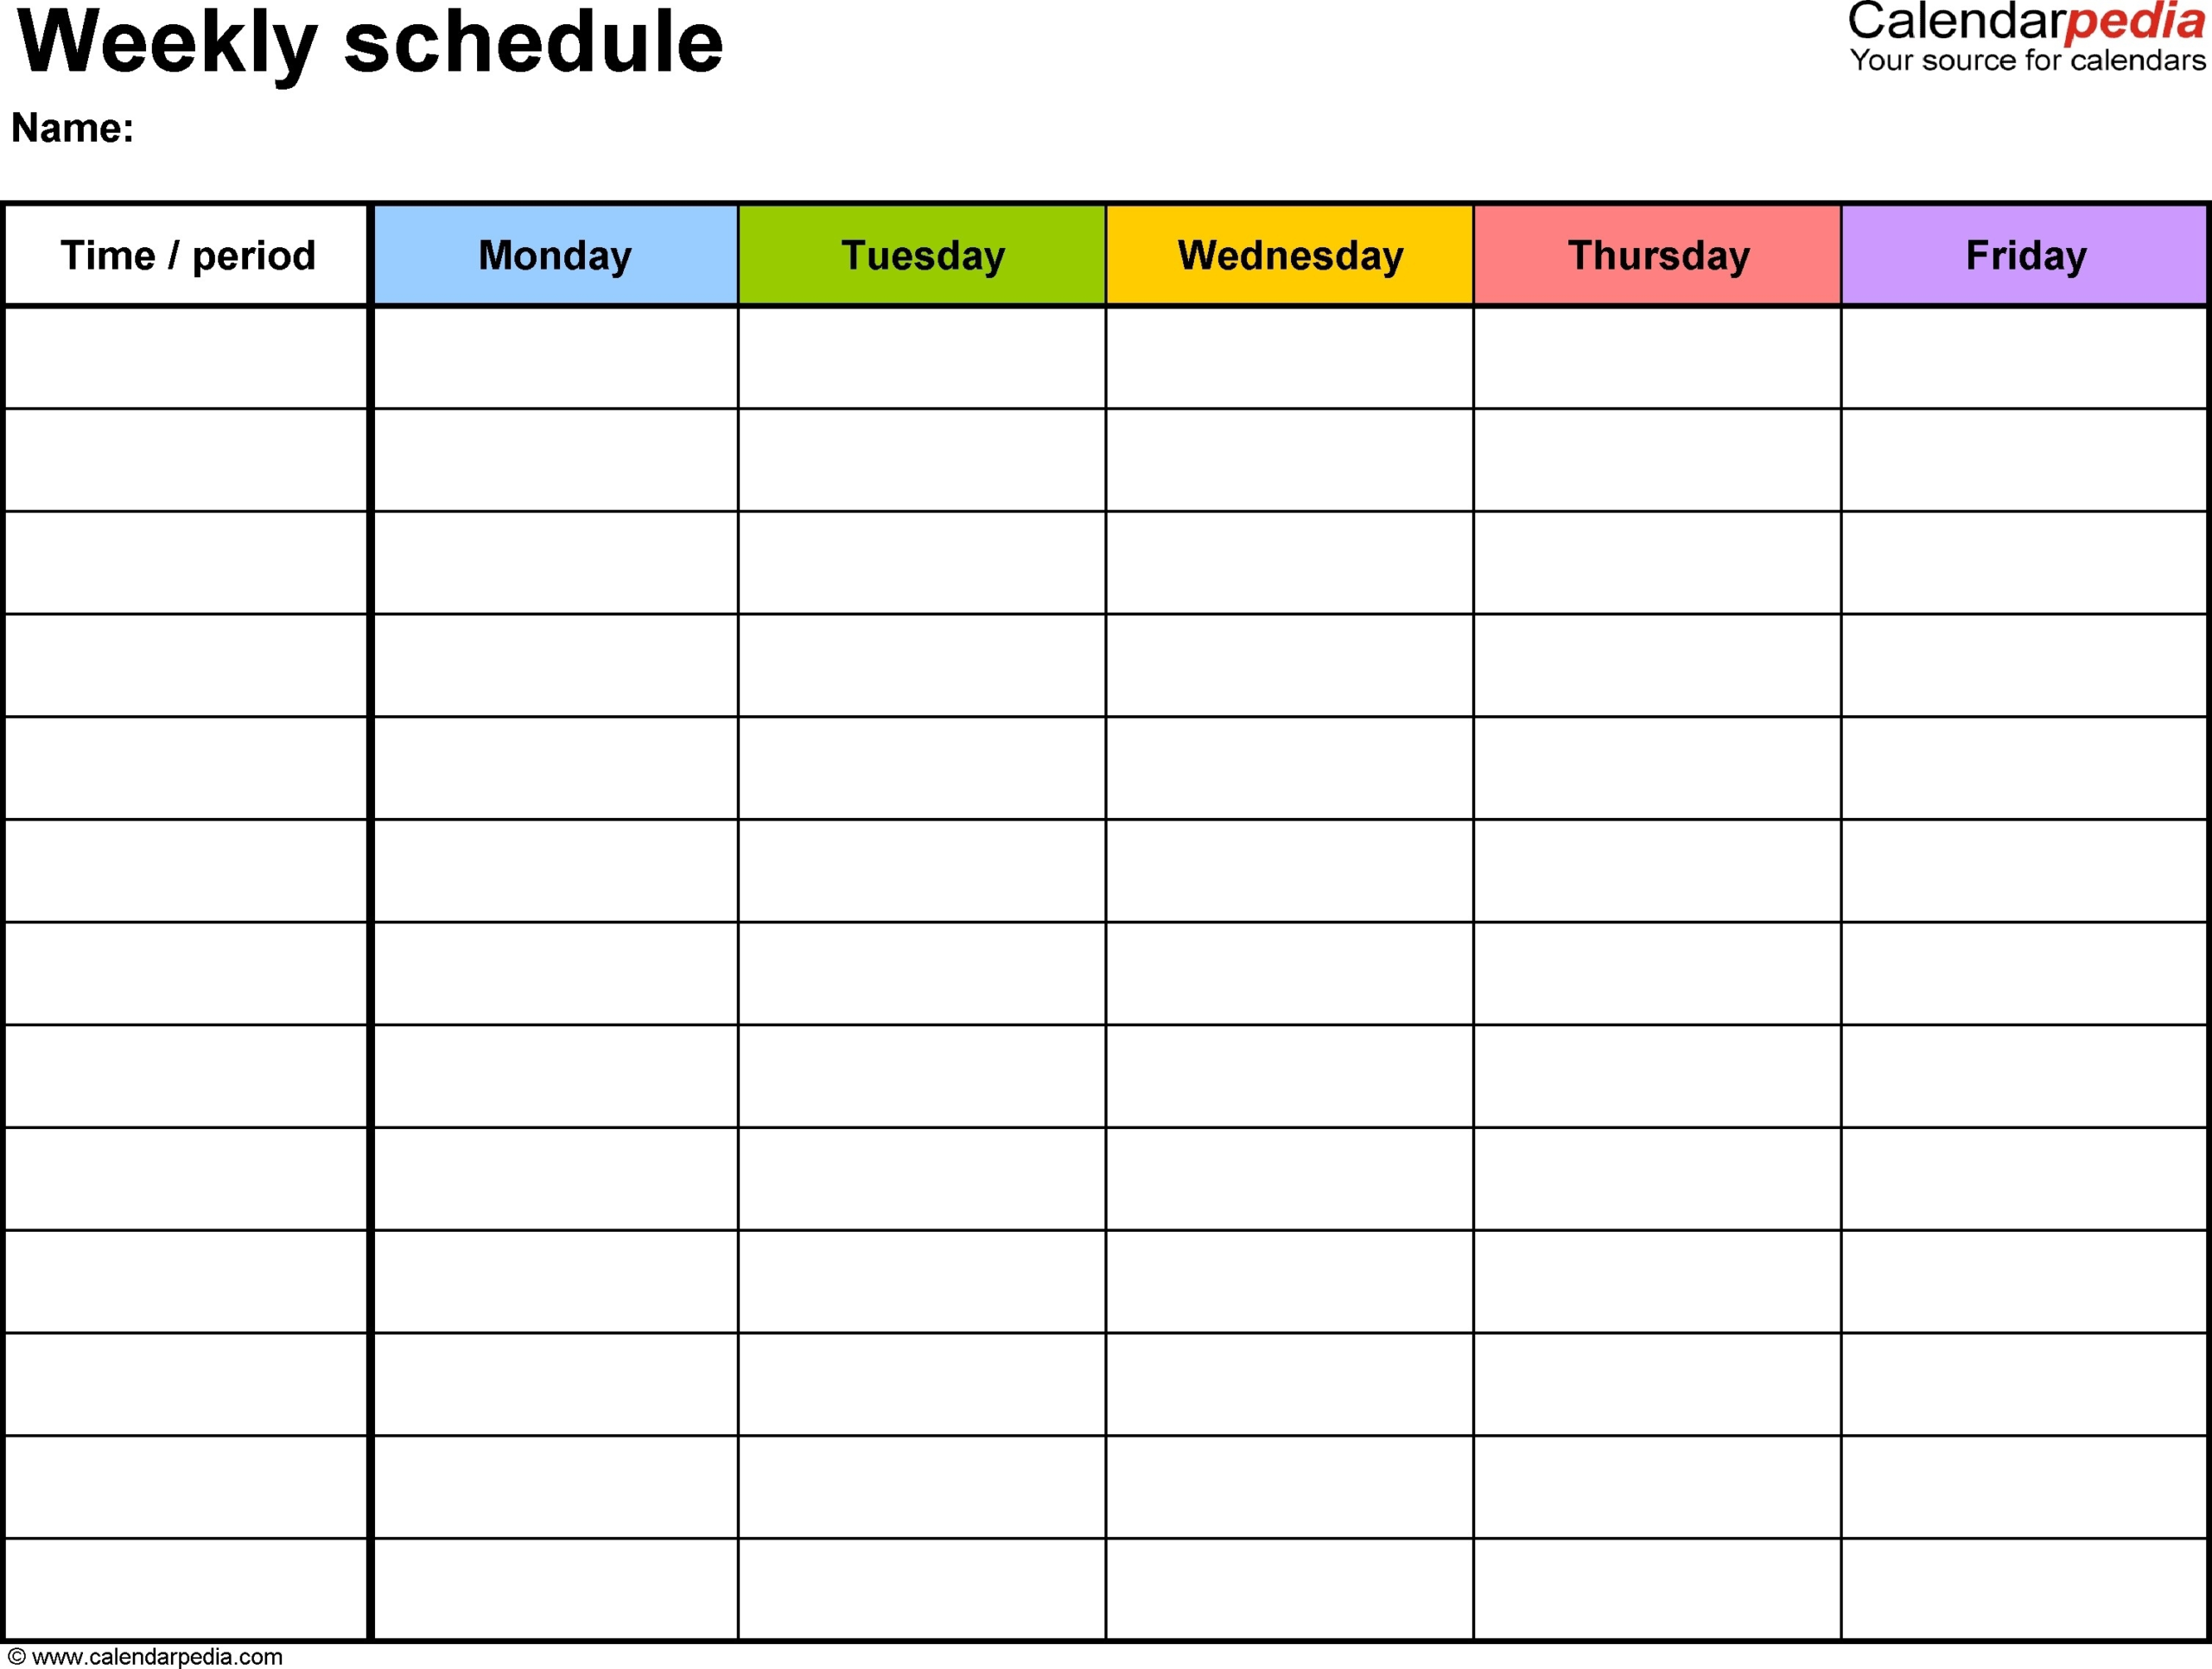 Printable Calendar With Time Slots | Ten Free Printable